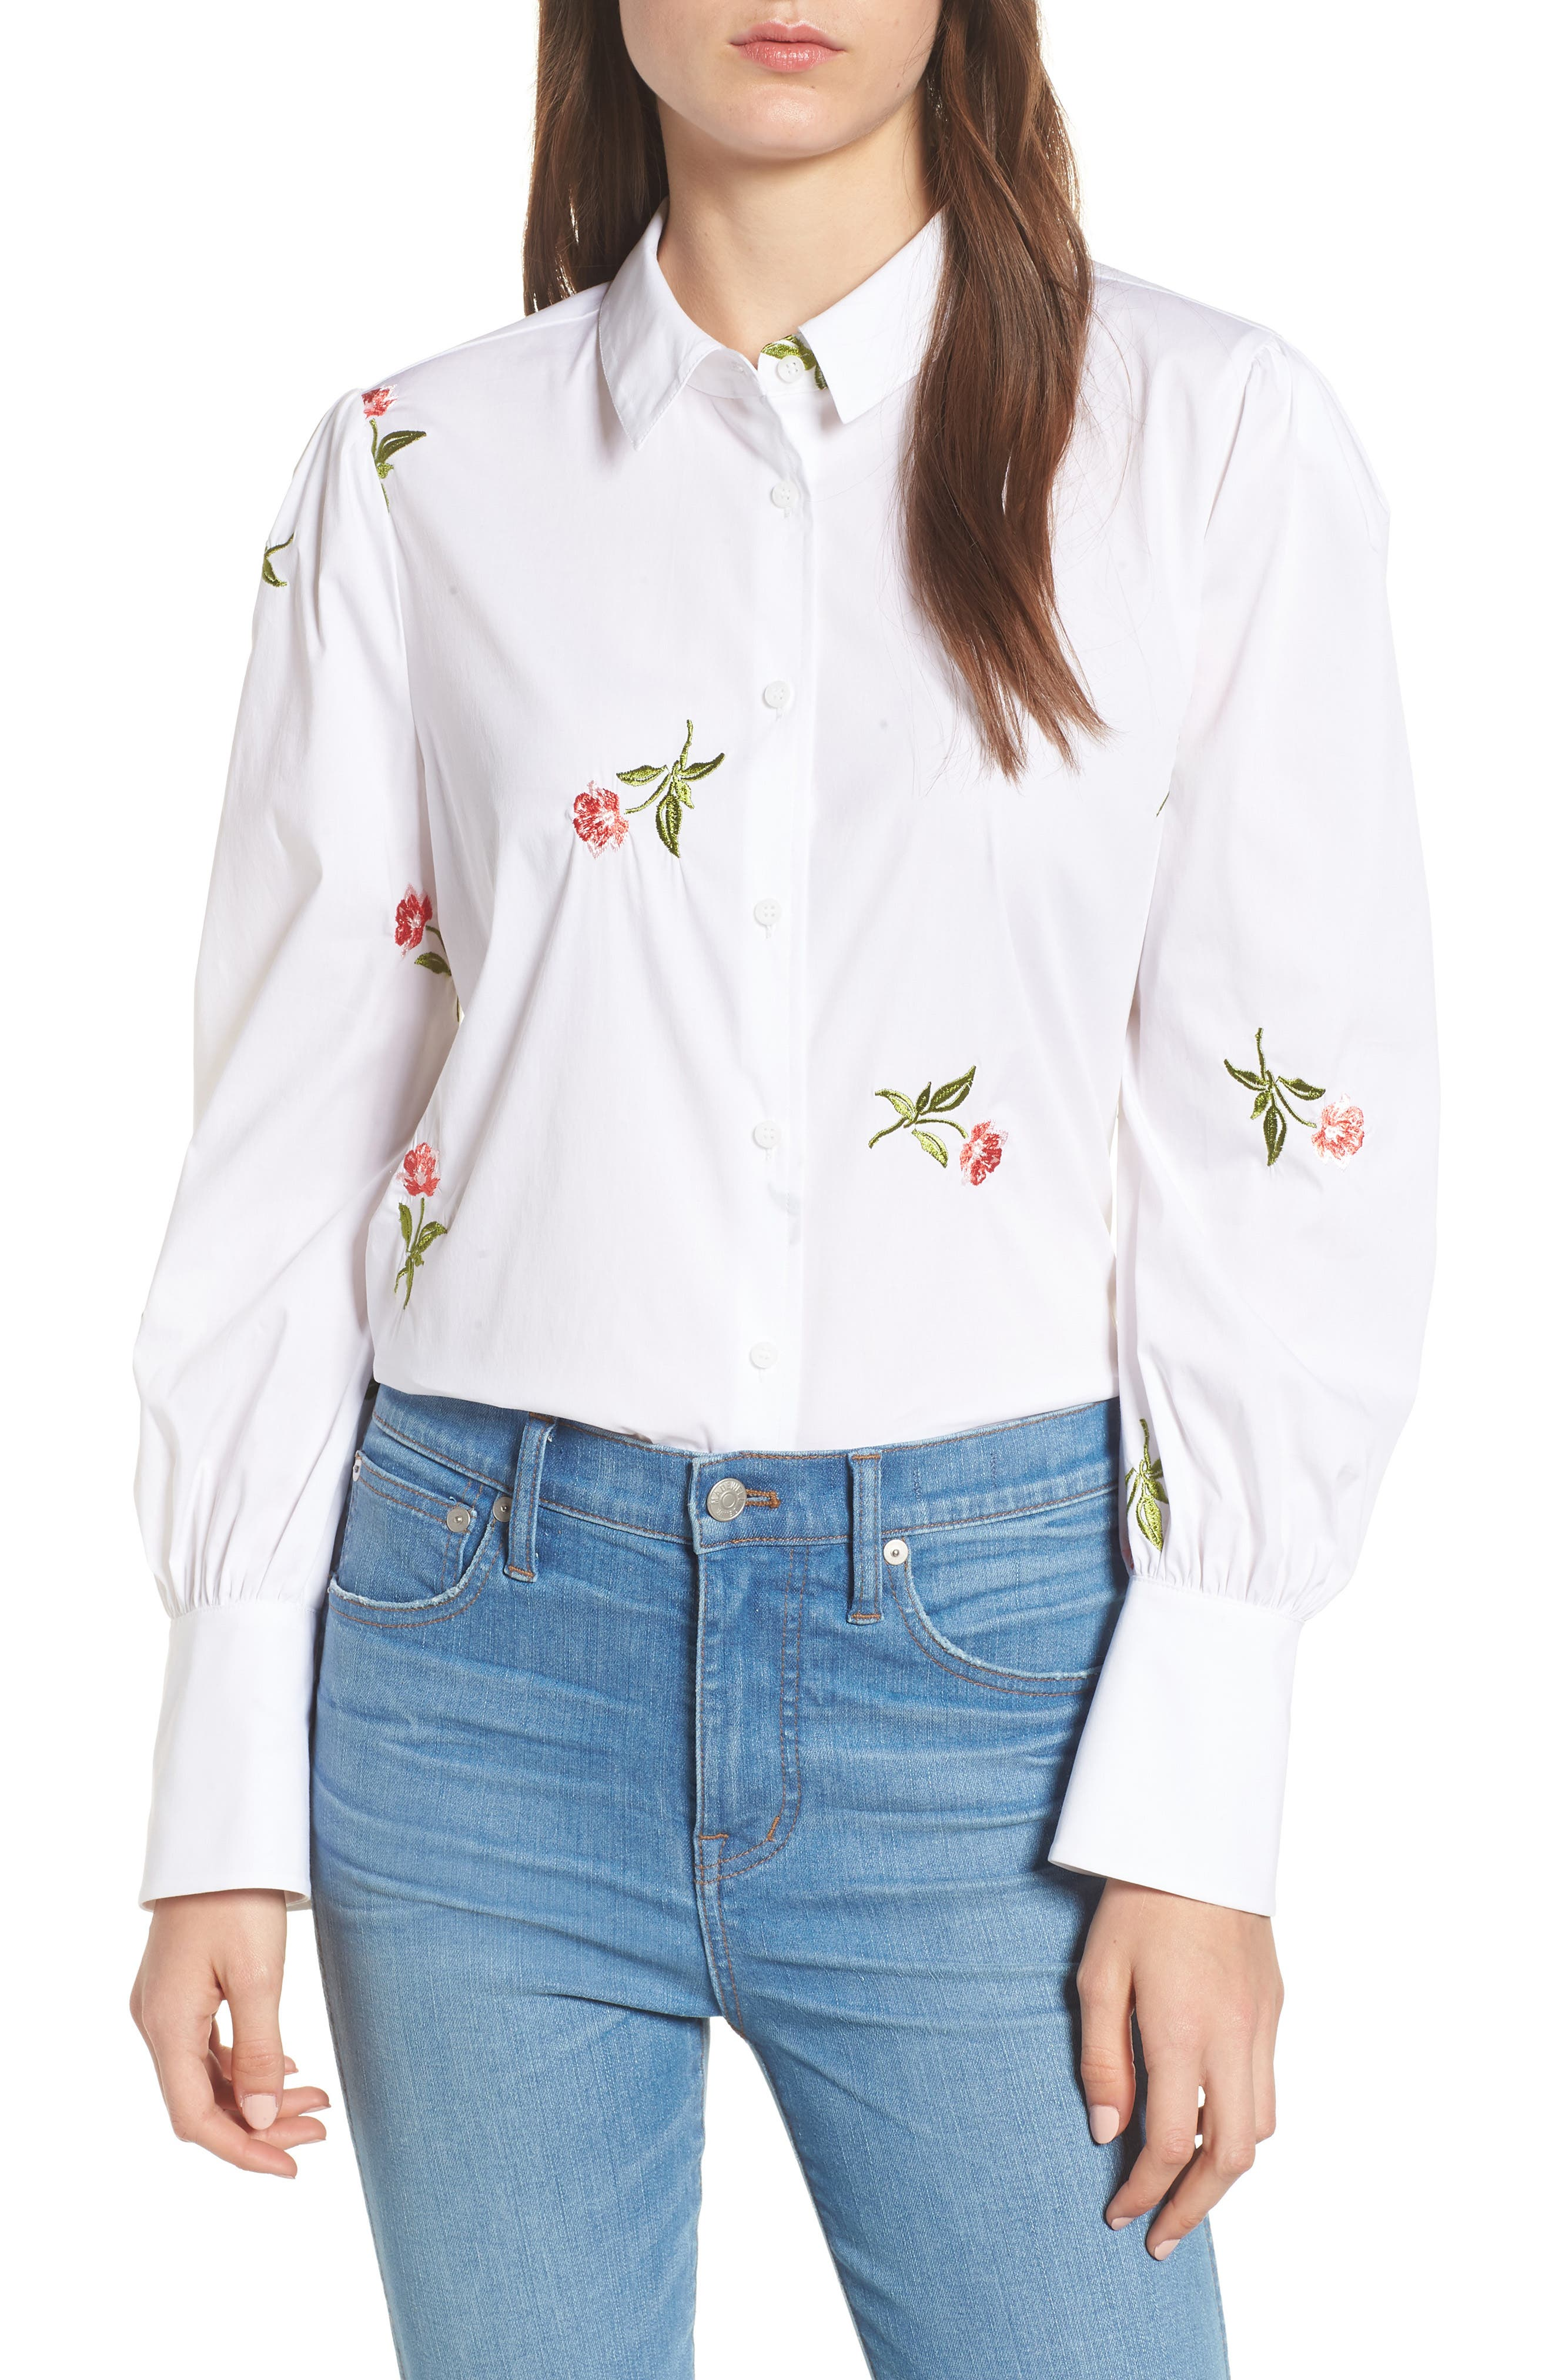 CHELSEA28 Embroidered Woven Shirt, Main, color, WHITE- CORAL BUD EMBROIDERY